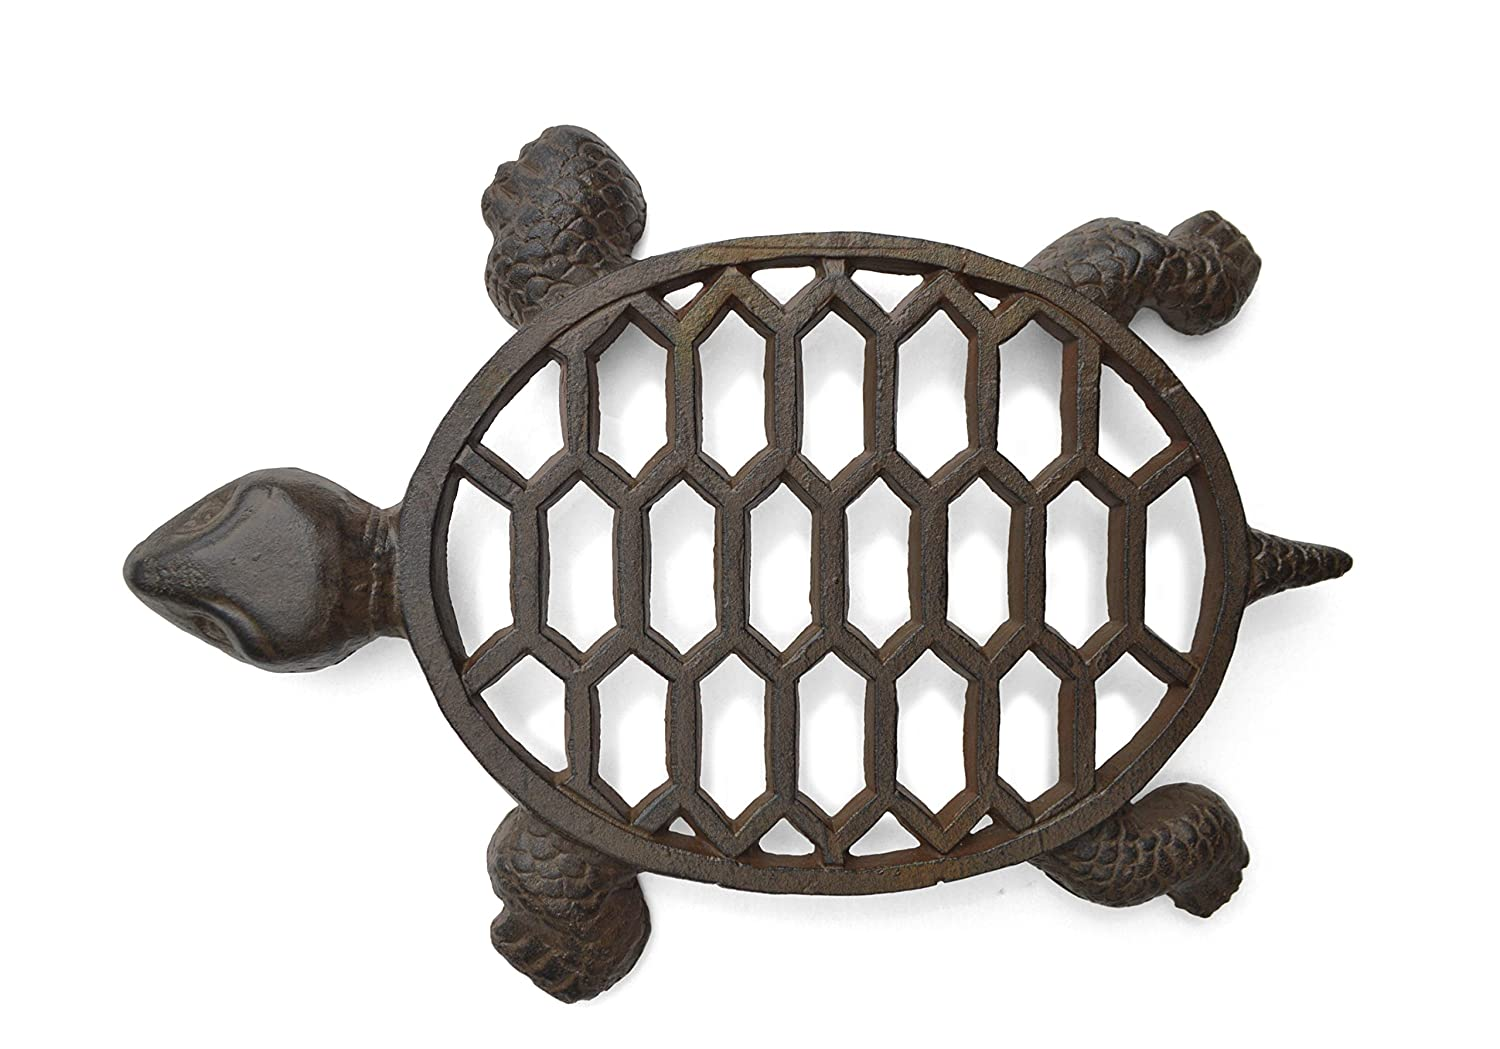 gasare, Cast Iron Trivet for Hot Dishes, Teapot Trivet, Turtle Decoration, Rubber Covers, 12 x 9 Inches, Cast Iron, Brown, 1 Extra Large piece LGT